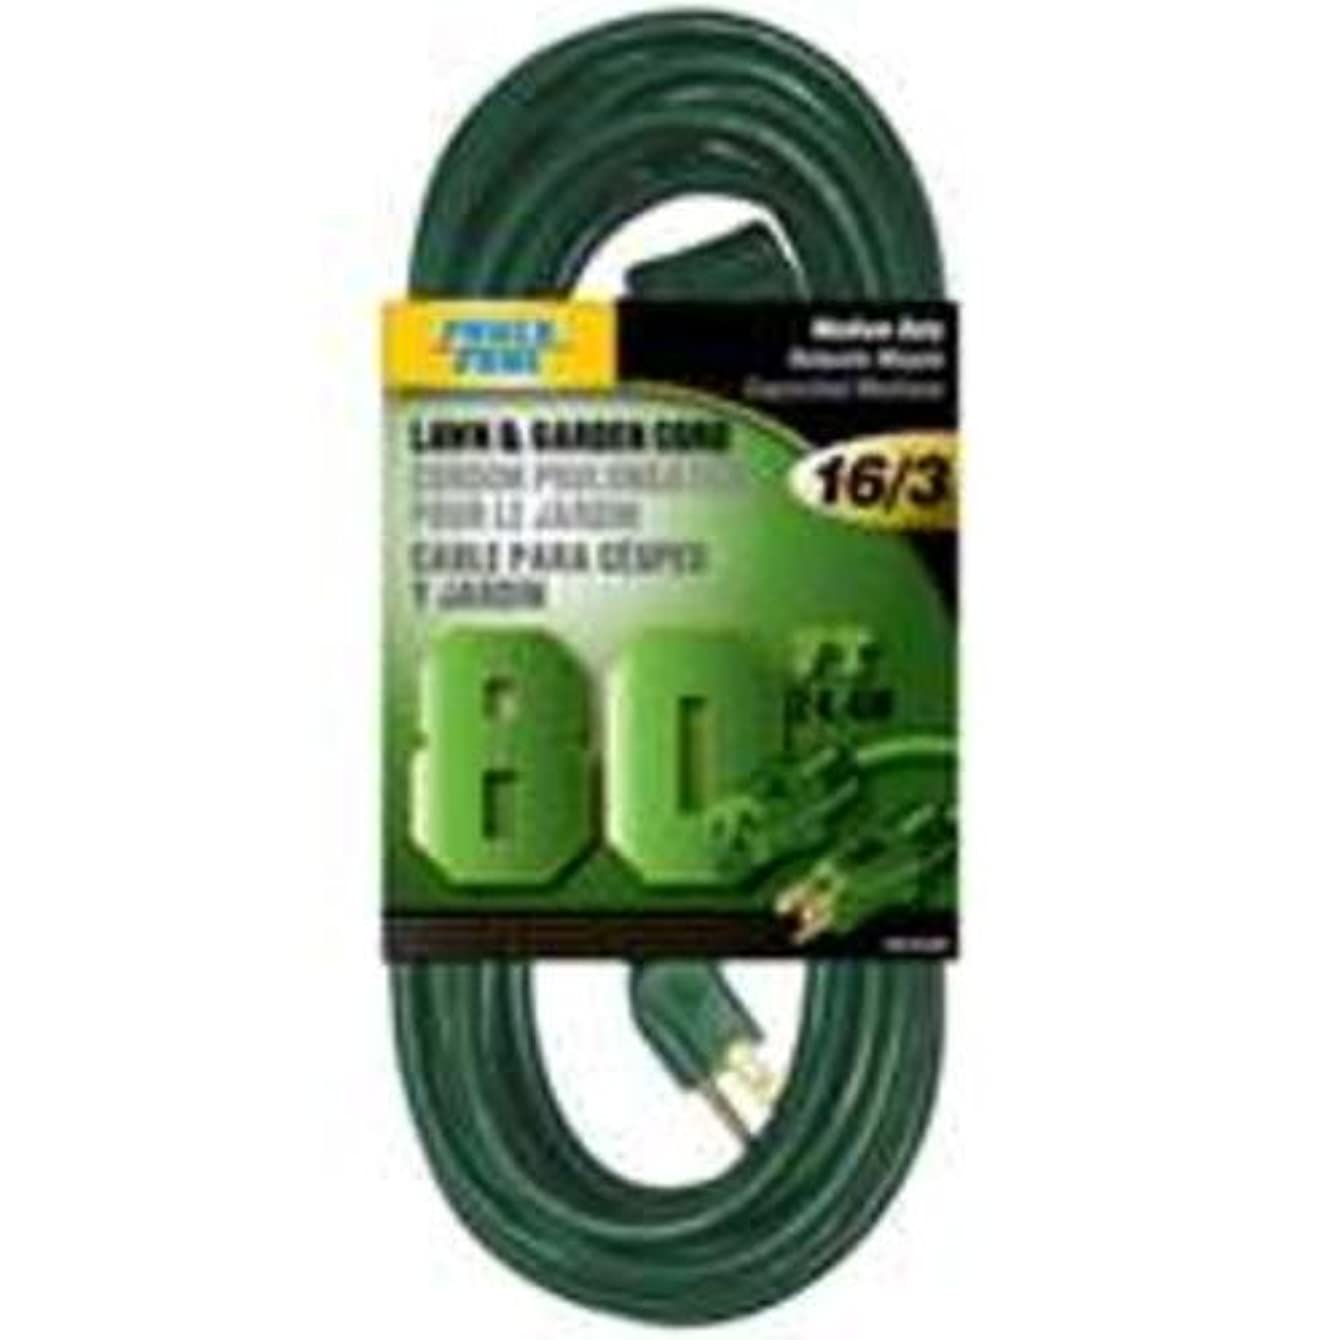 Lawn and Garden Cord 80ft 16/3 SJTW 10 amp 125 volt 3 conductor